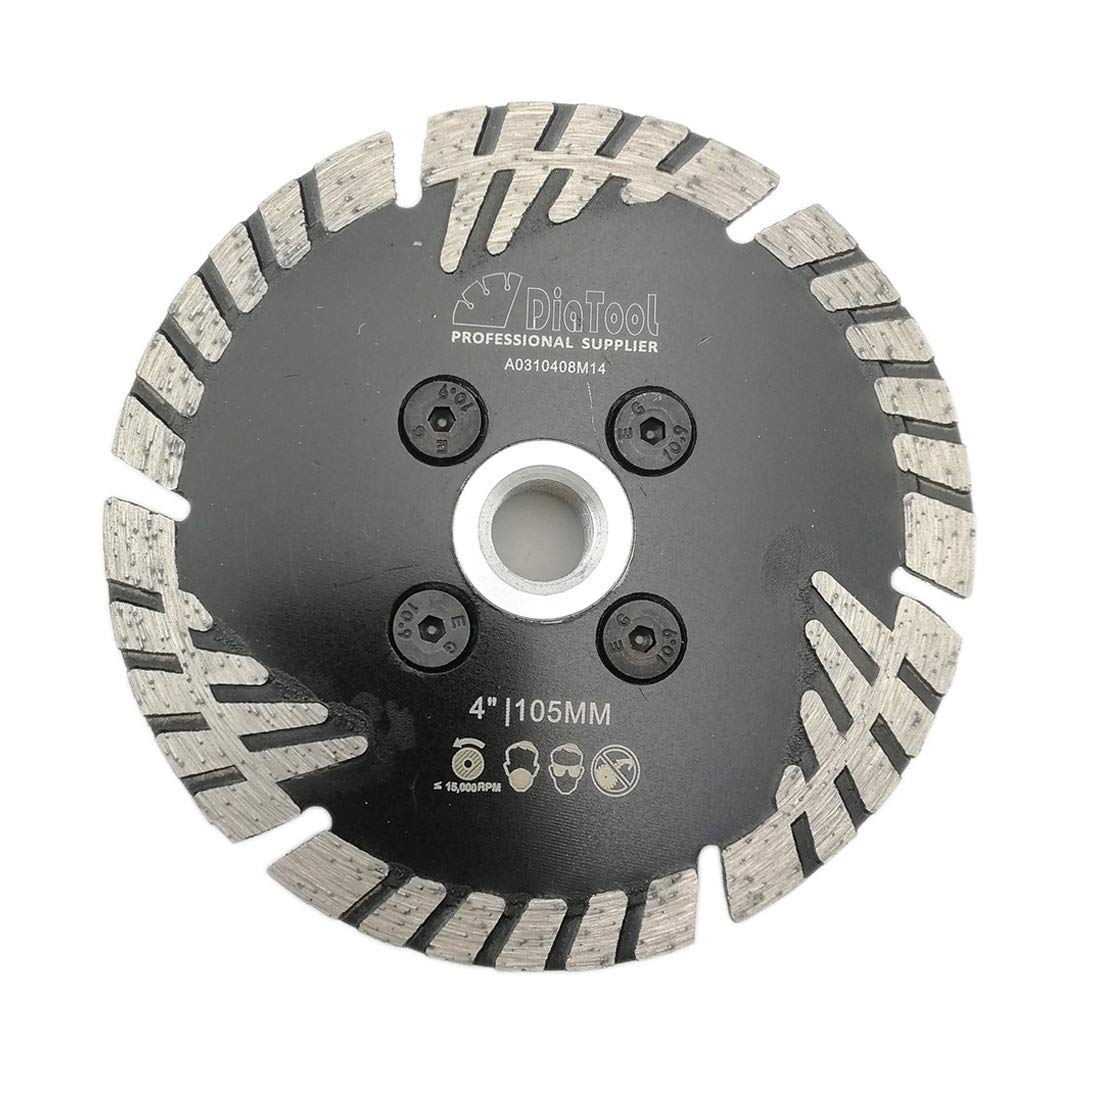 DIATOOL Diamond Turbo Blade Slant protection teeth Hot pressed Cutting Disc 5/8-13 Flange Diamond Grinding Wheel concrete brick tile granite marble masonry (4 inch Flange 5/8-11)